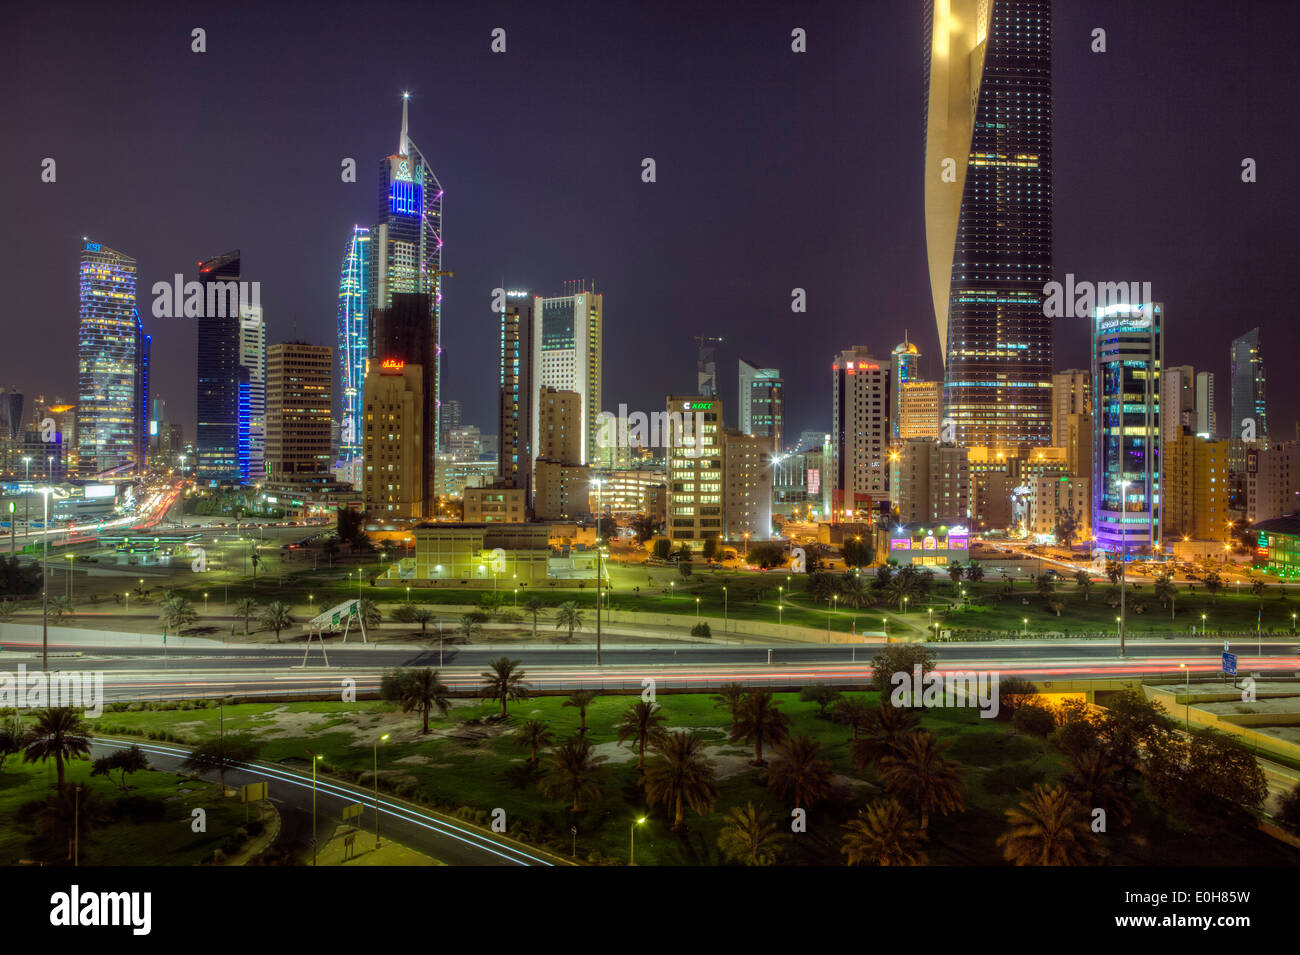 Arabian Peninsula, Kuwait, city skyline and central business district, elevated view at night Stock Photo